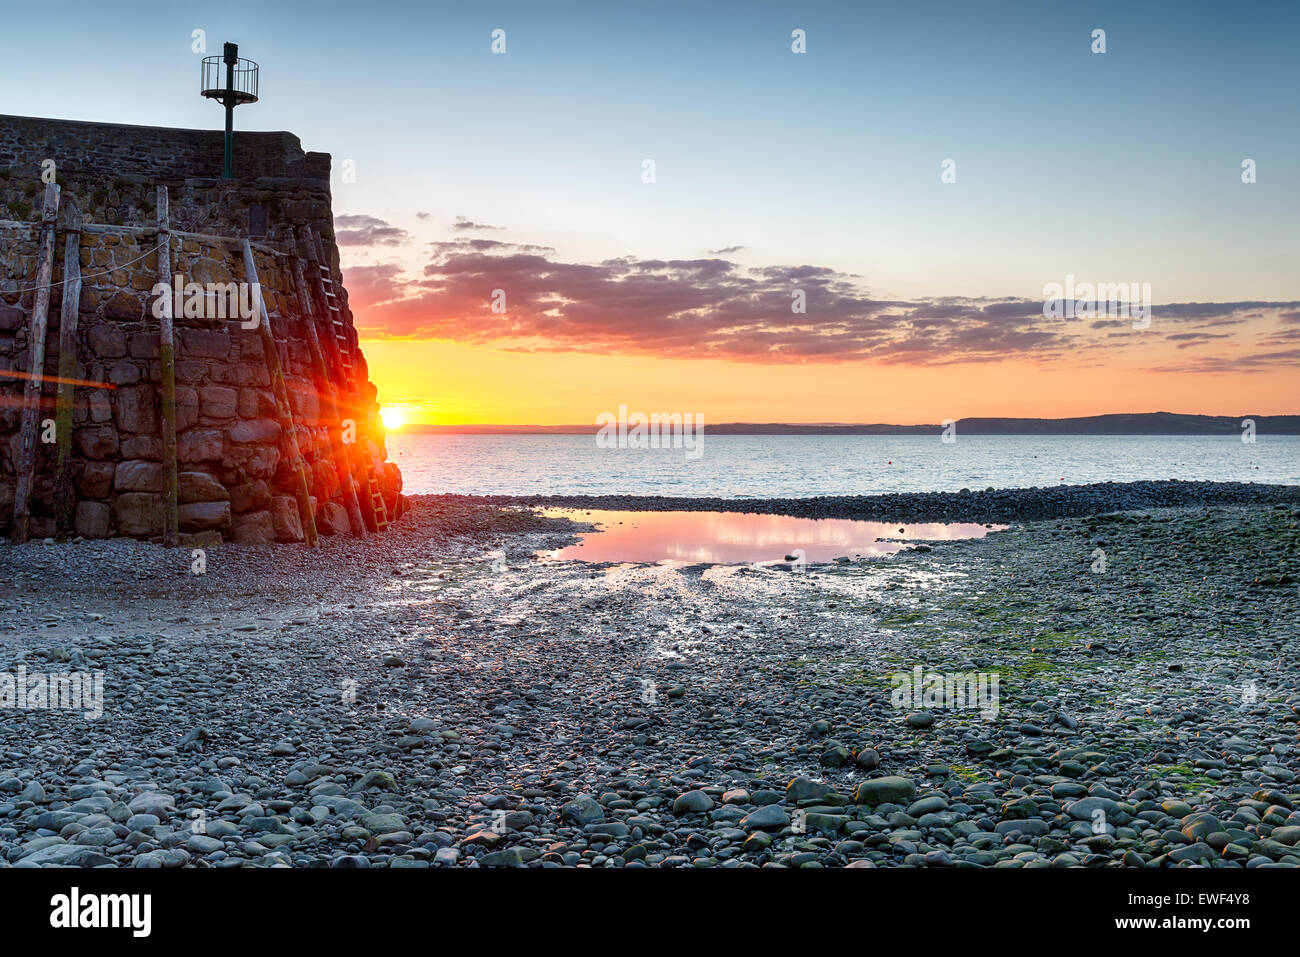 Sunrise at the harbour entrance to Clovelly on the north Devon coast - Stock Image